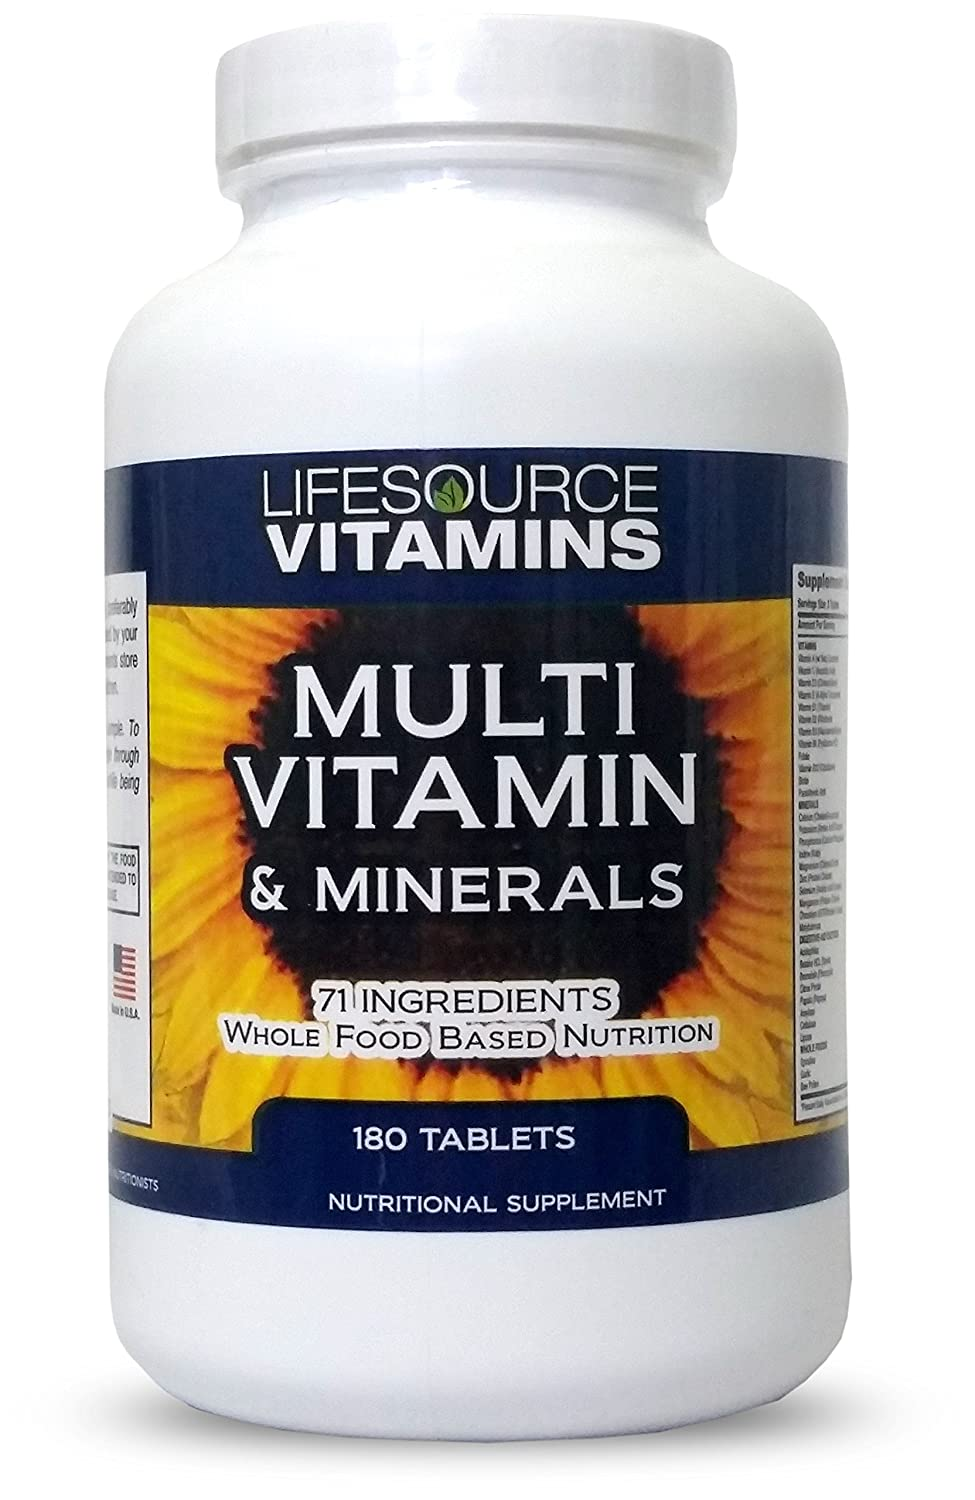 LifeSource Complete Multi Vitamin Minerals 180 Tablets Includes 71 Whole Food Ingredients